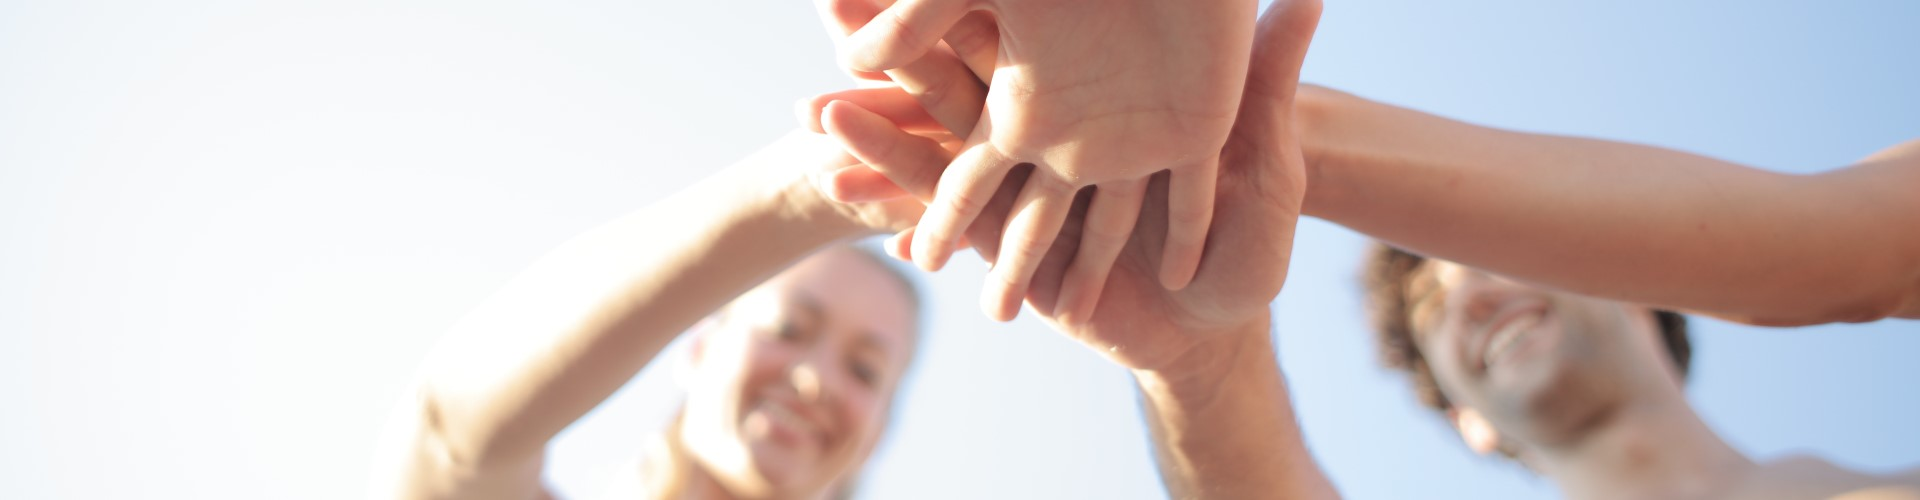 group-of-friend-s-hands-3851943